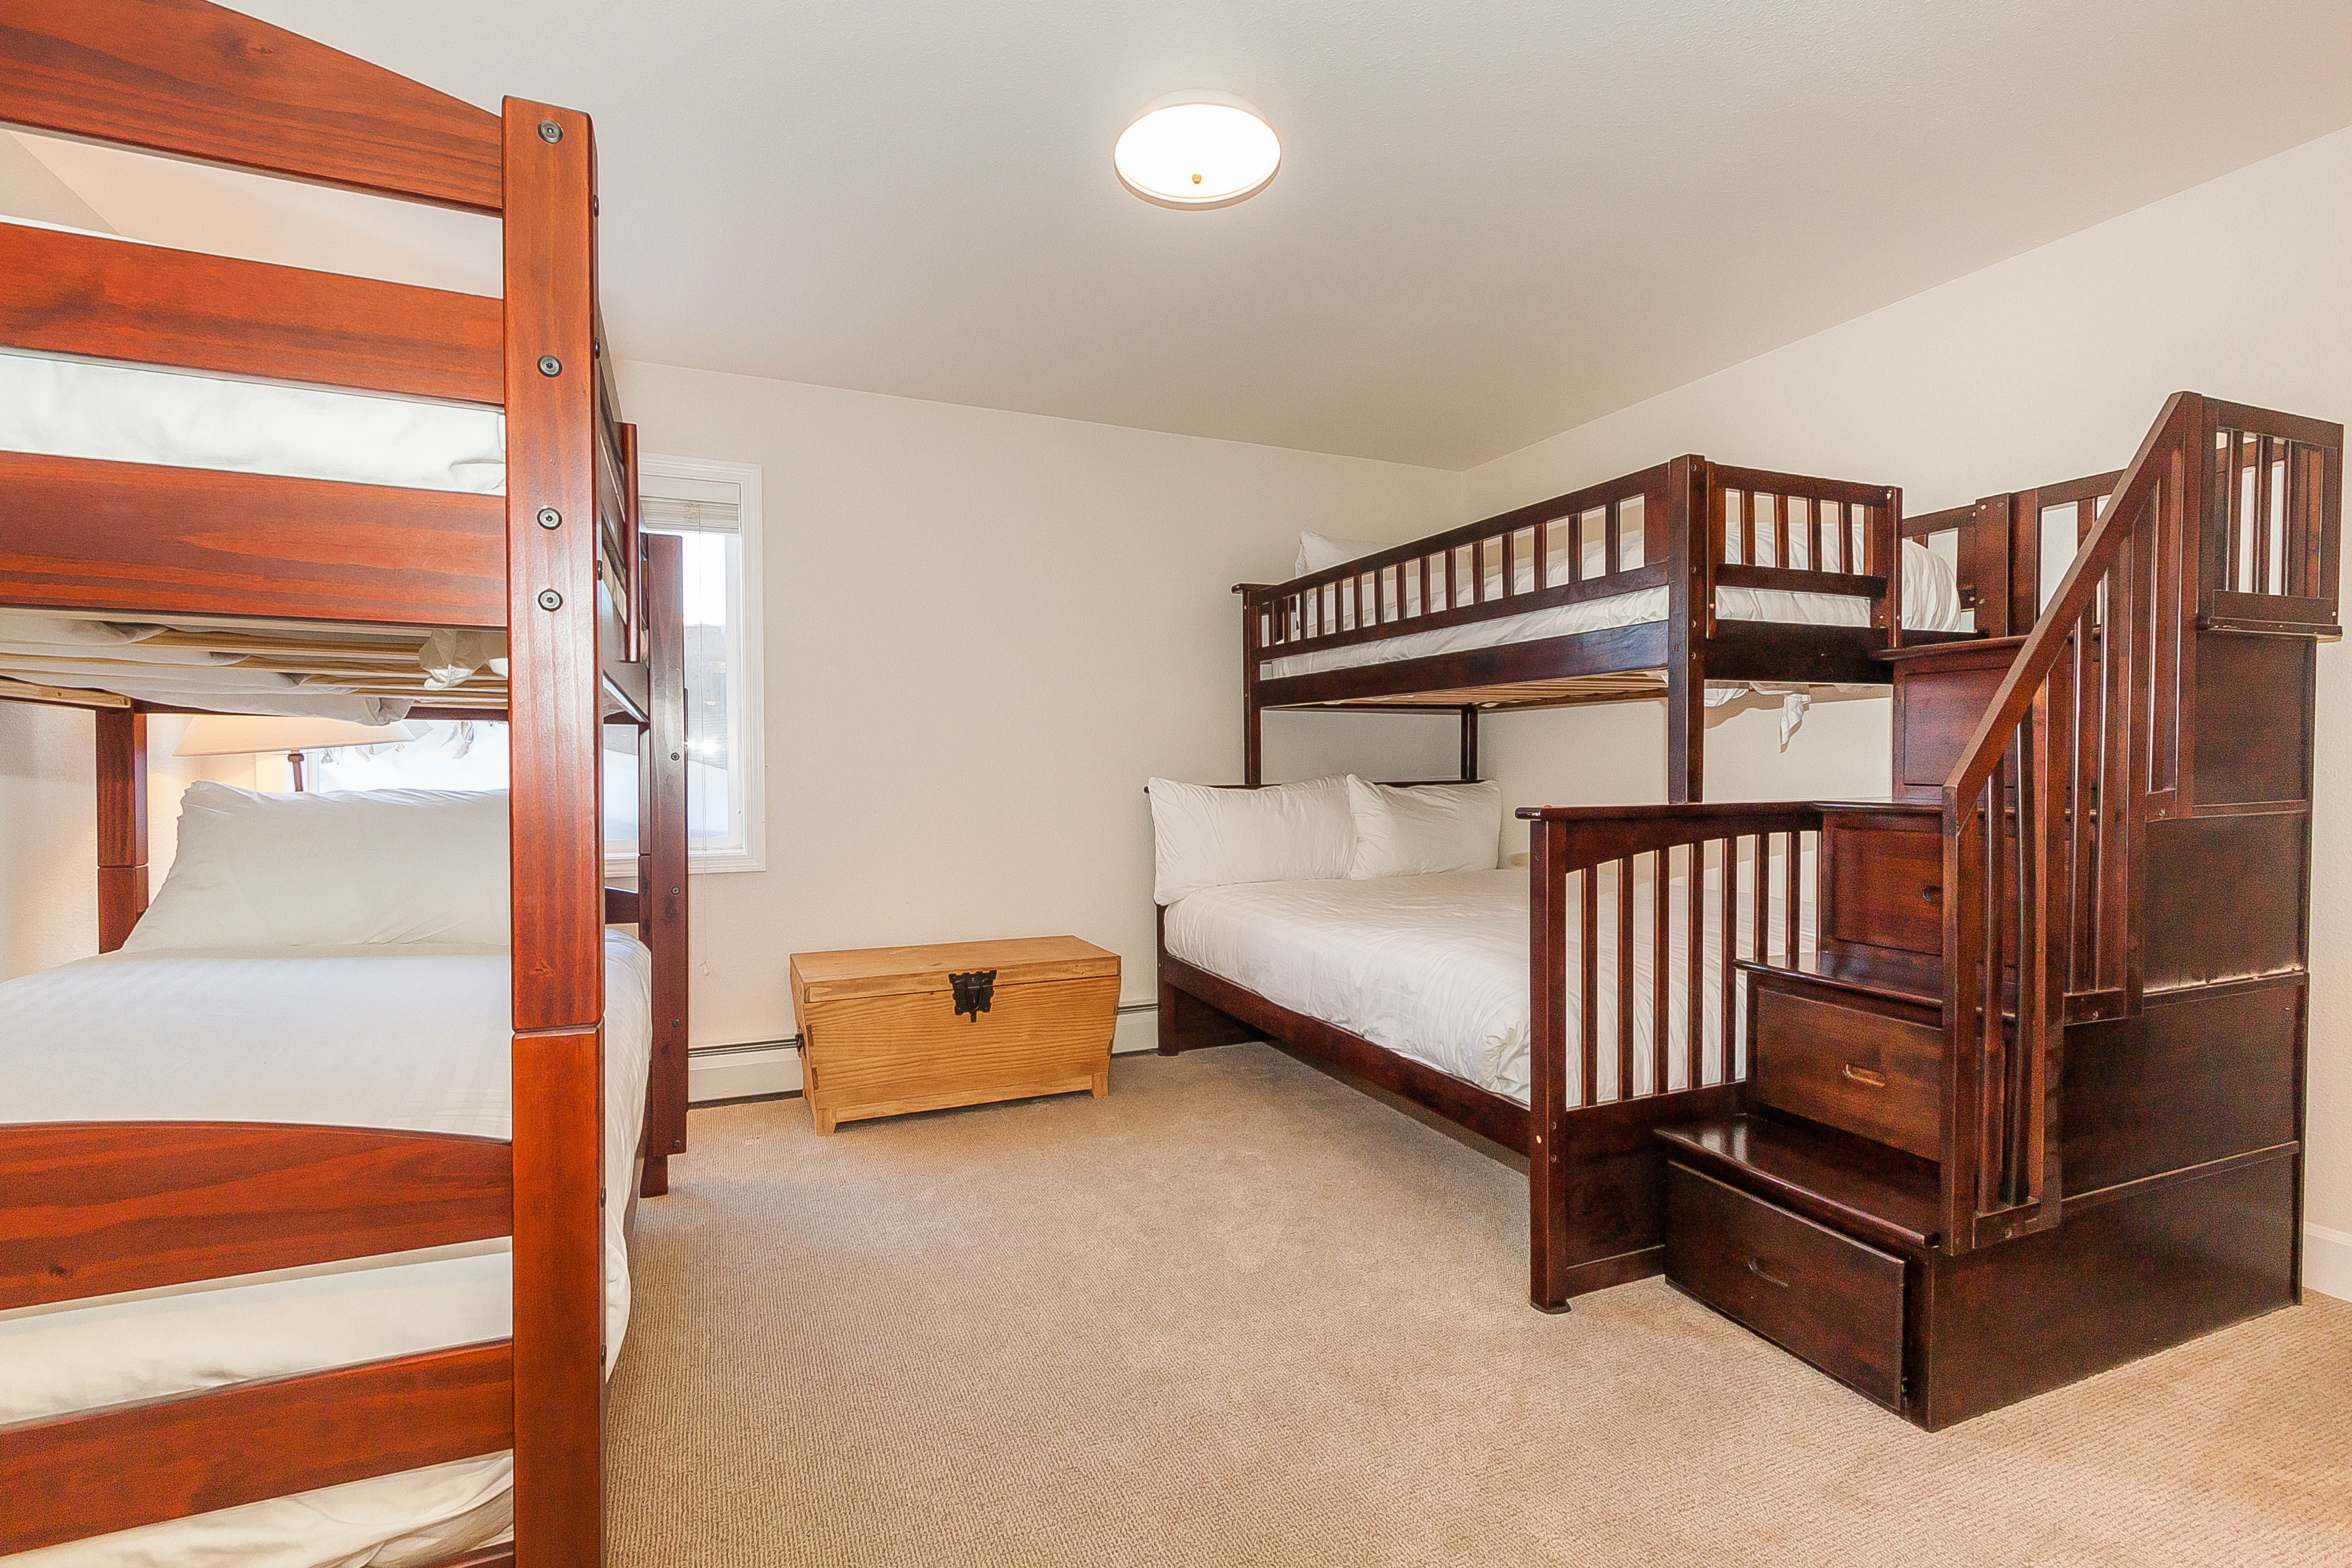 The guest bedroom is downstairs and features a twin-over-full and a twin-sized bunk bed with Ivory White Bedding.